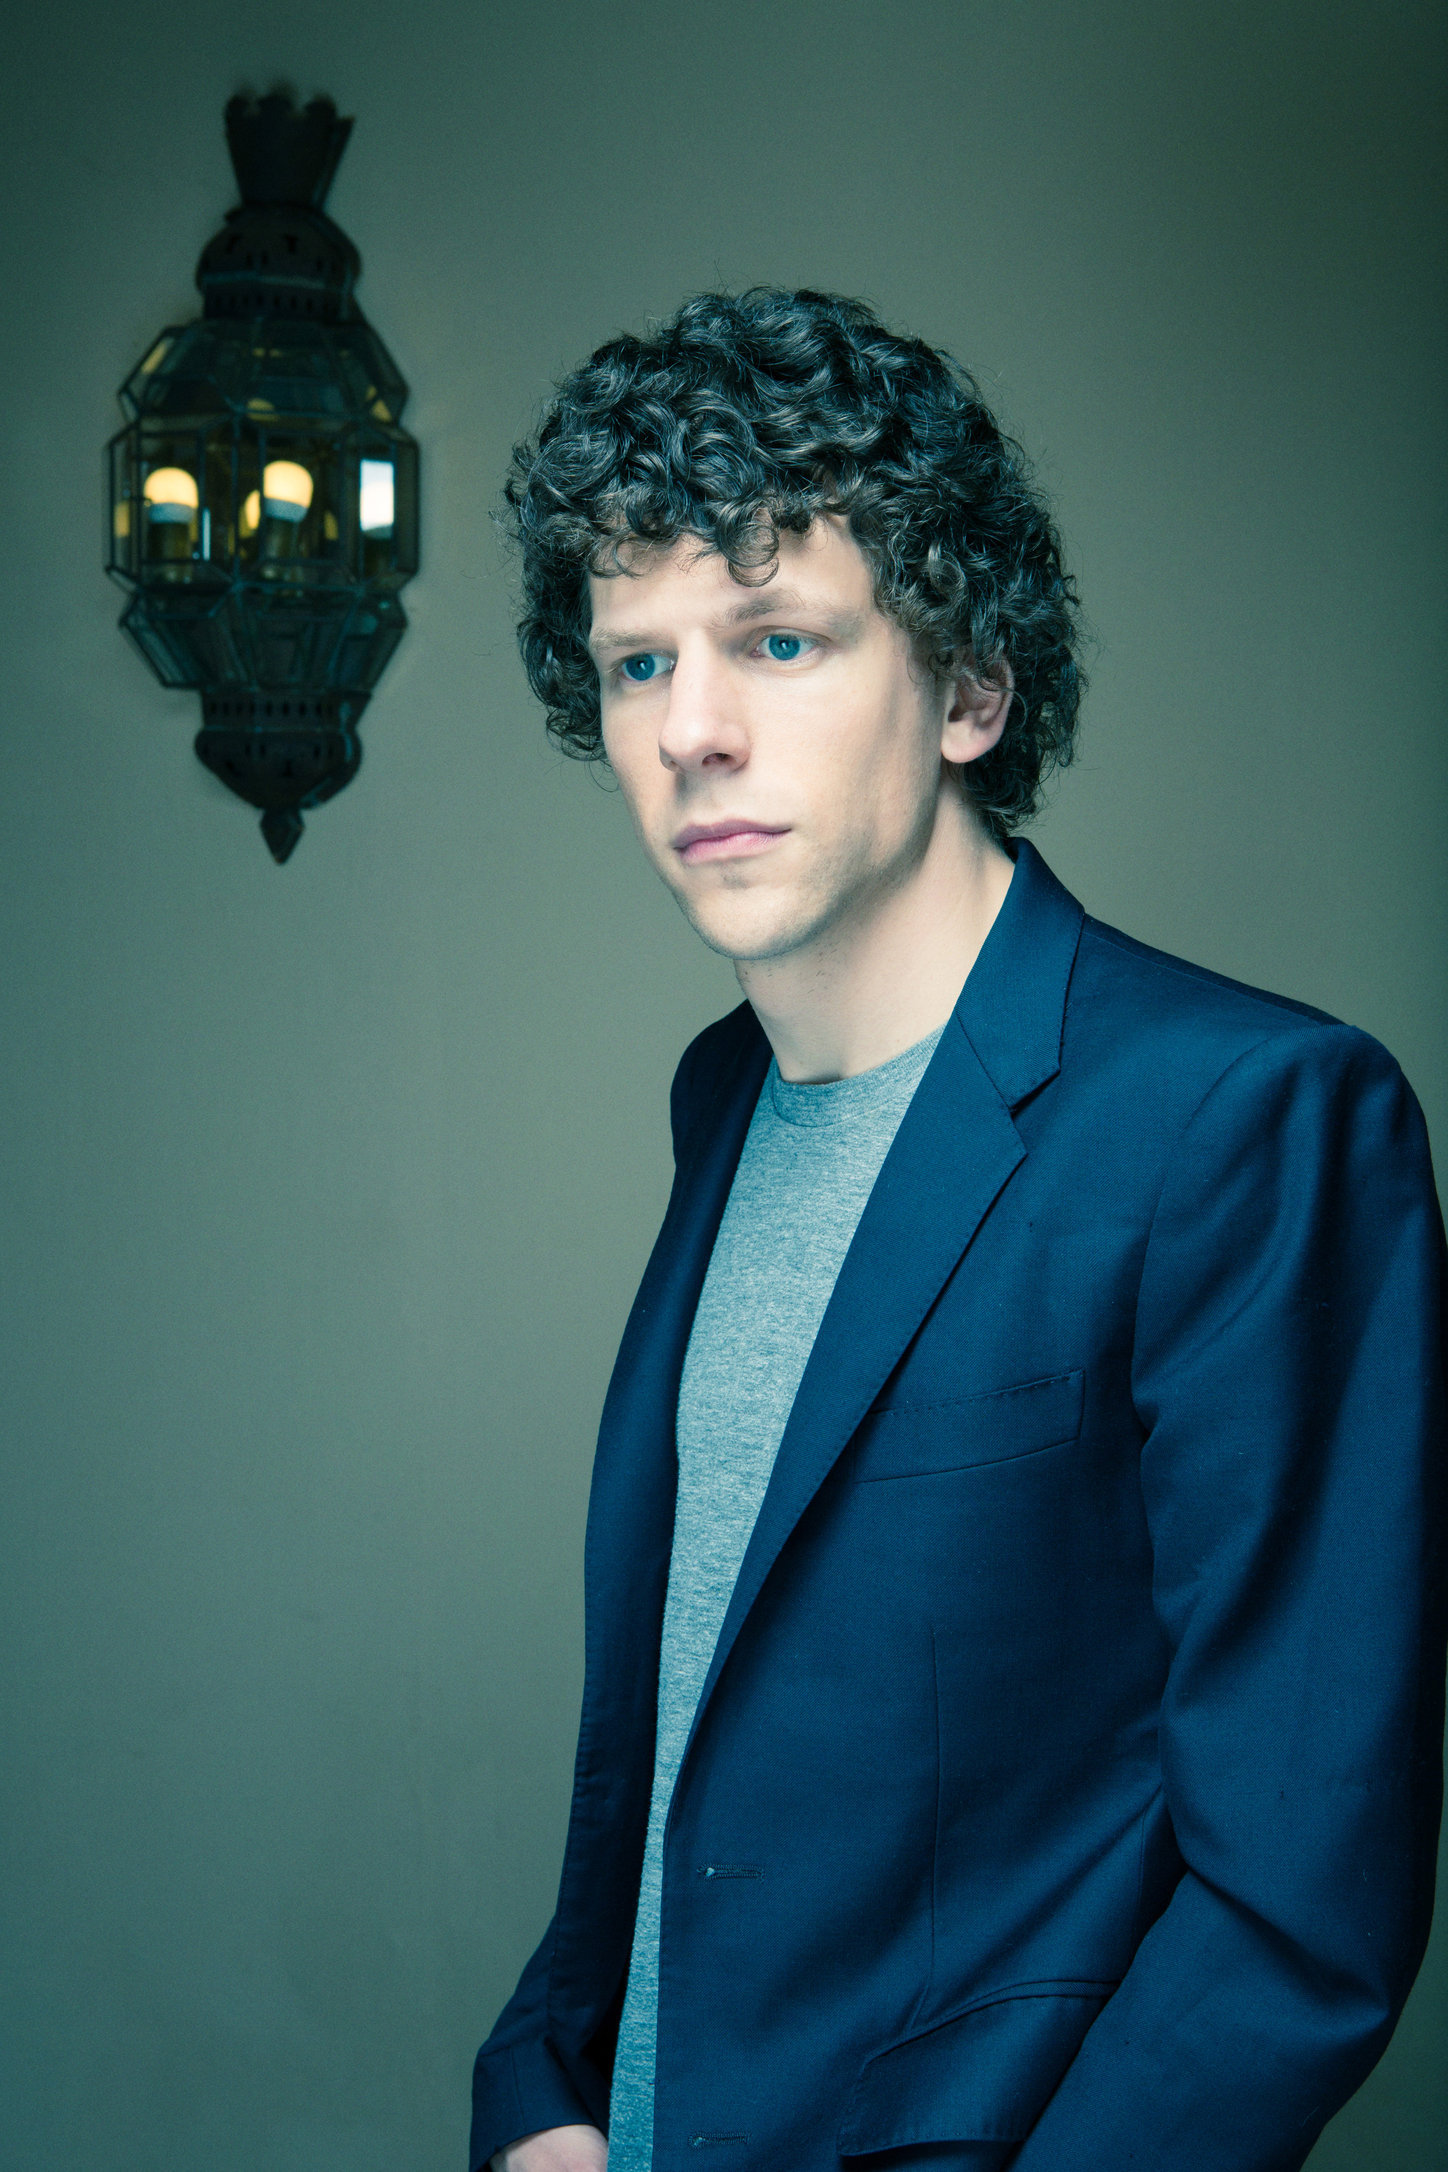 jesse eisenberg, actor